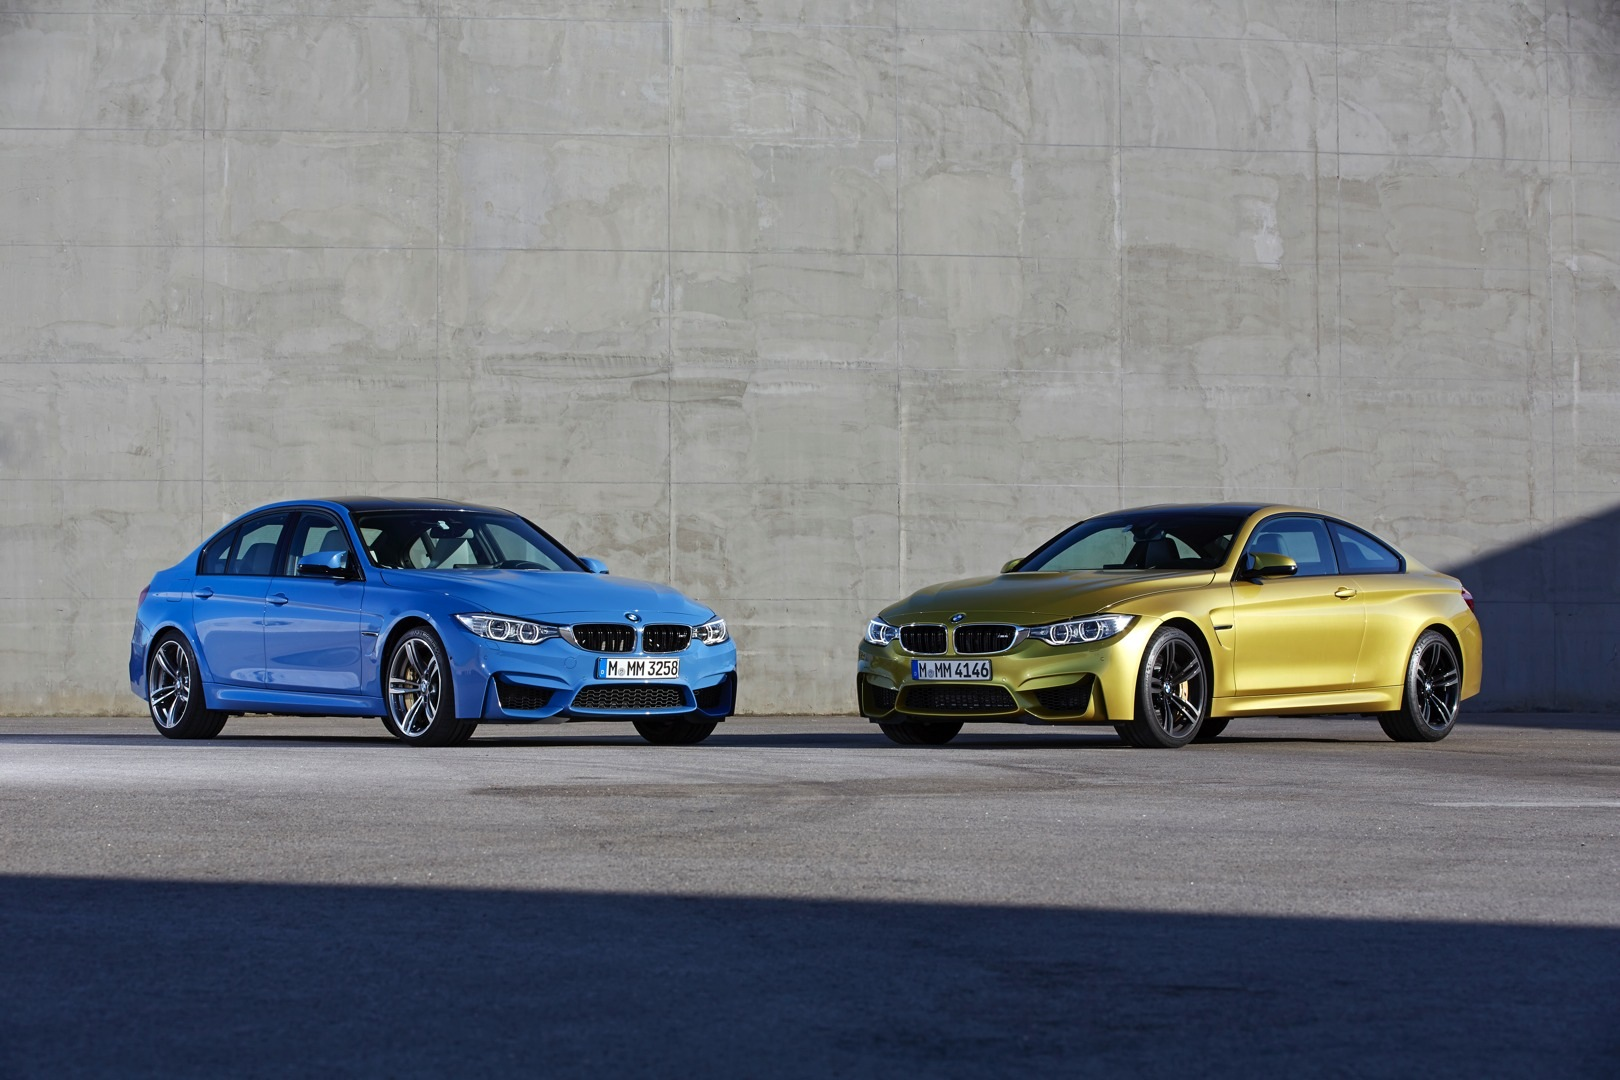 New Bmw M3 And M4 Hd Wallpapers Are Here Autoevolution